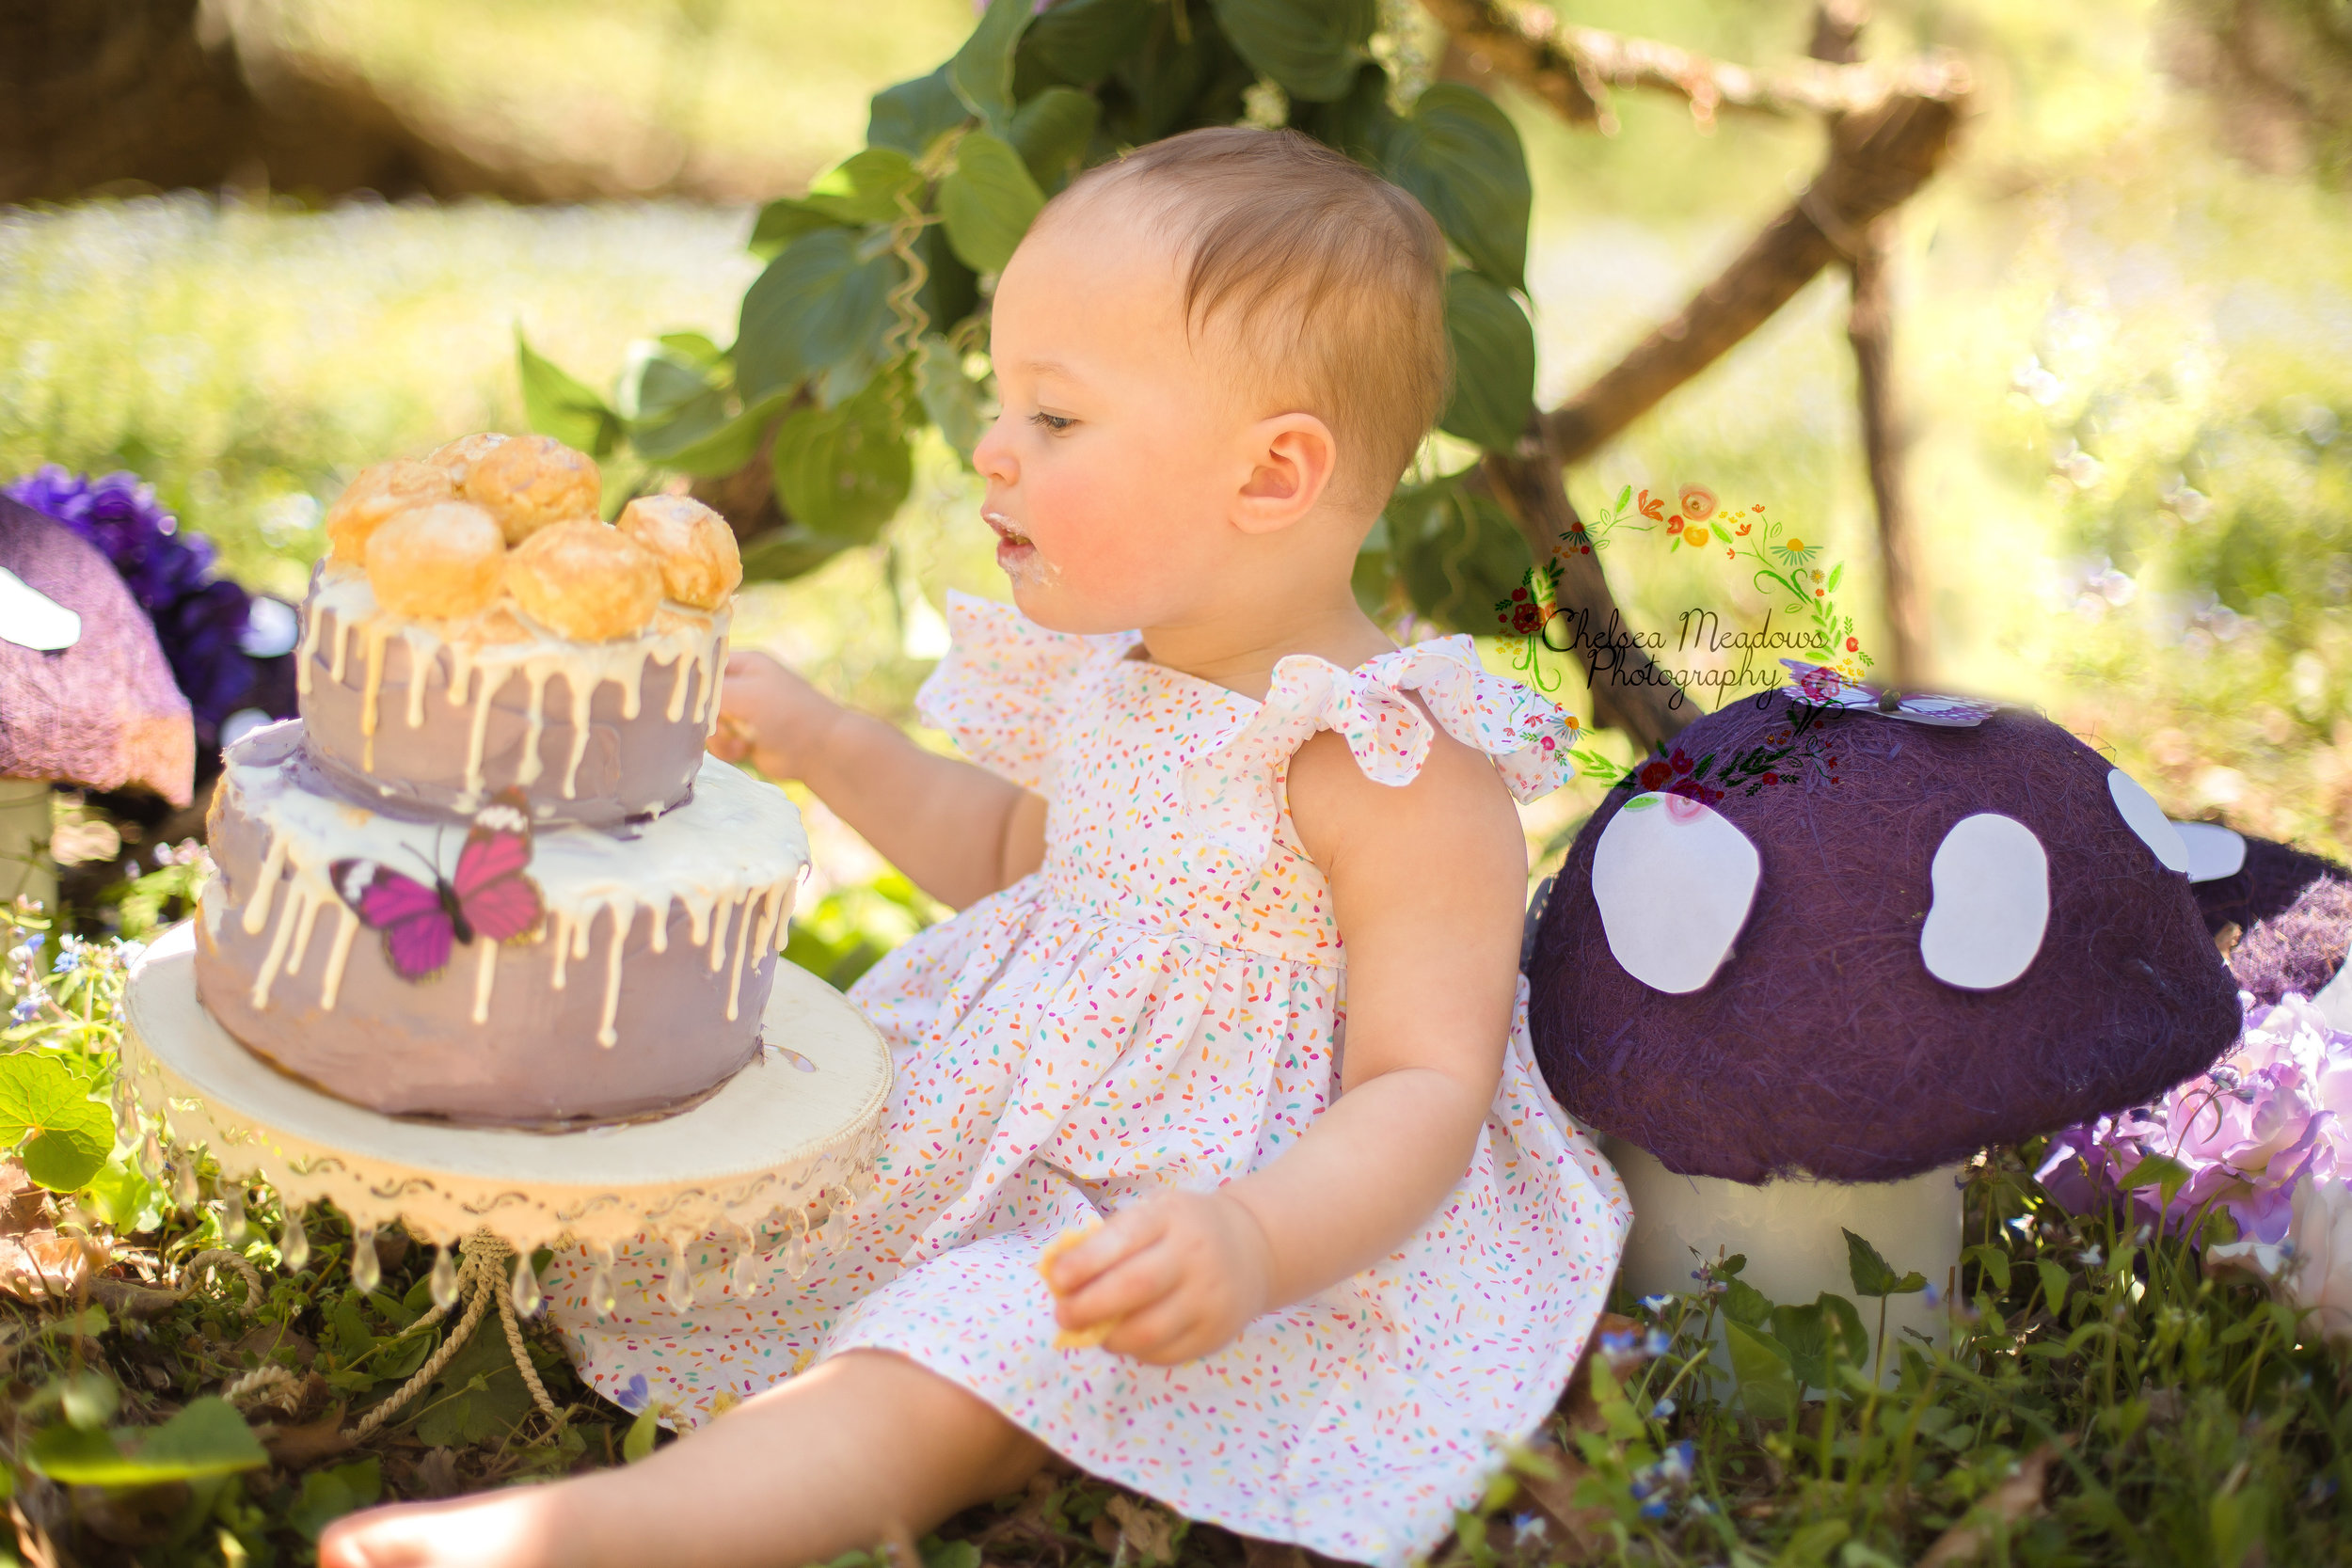 Ivy Cake Smash - Nashville Family Photographer - Chelsea Meadows Photography (88).jpg